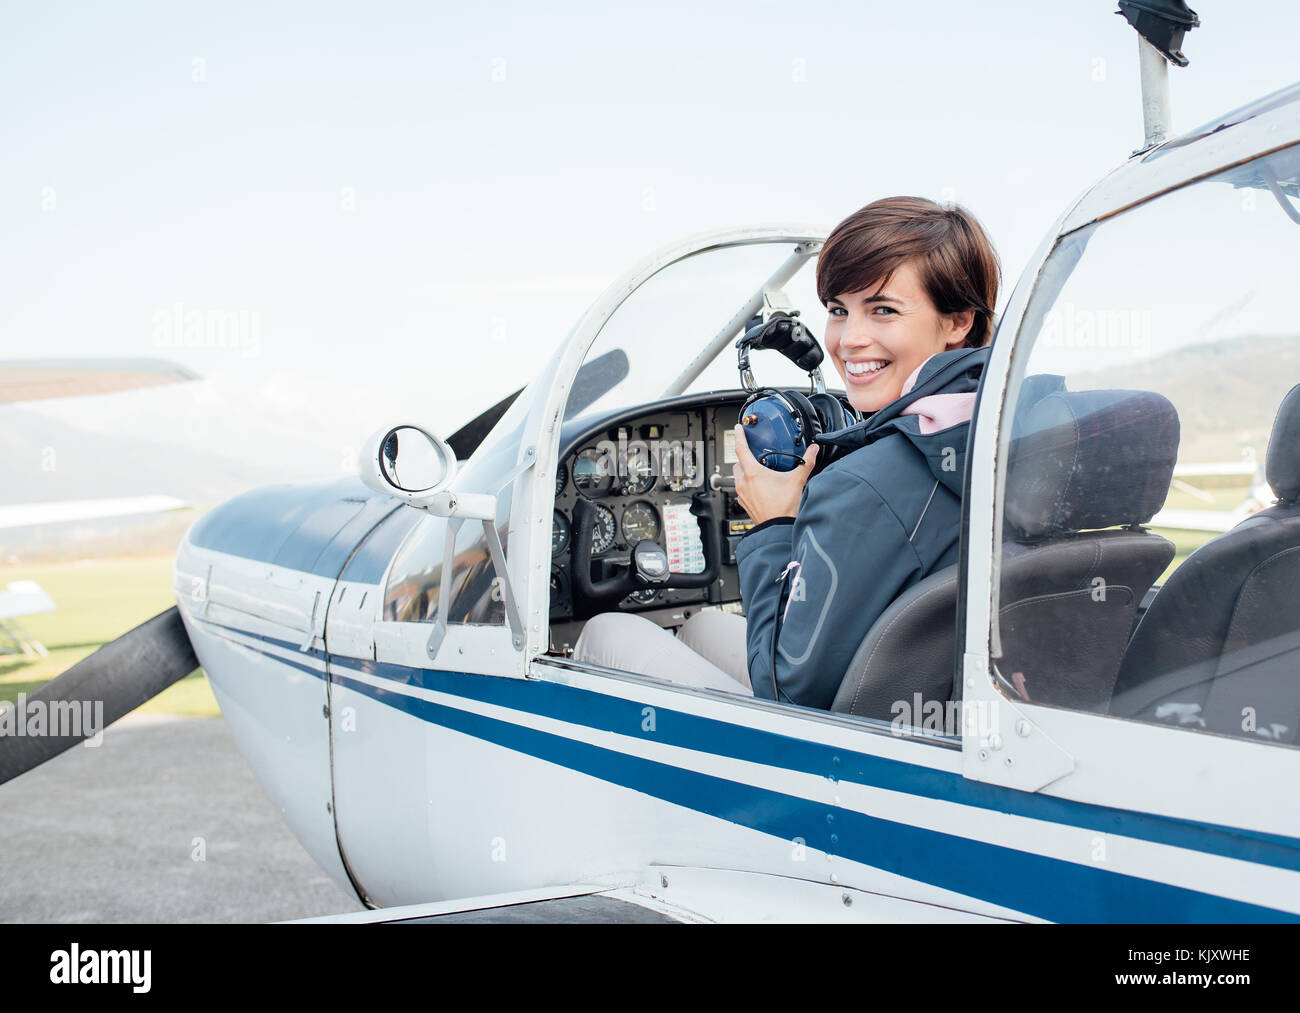 Smiling female pilot in the light aircraft cockpit, she is holding aviator headset and looking at camera - Stock Image